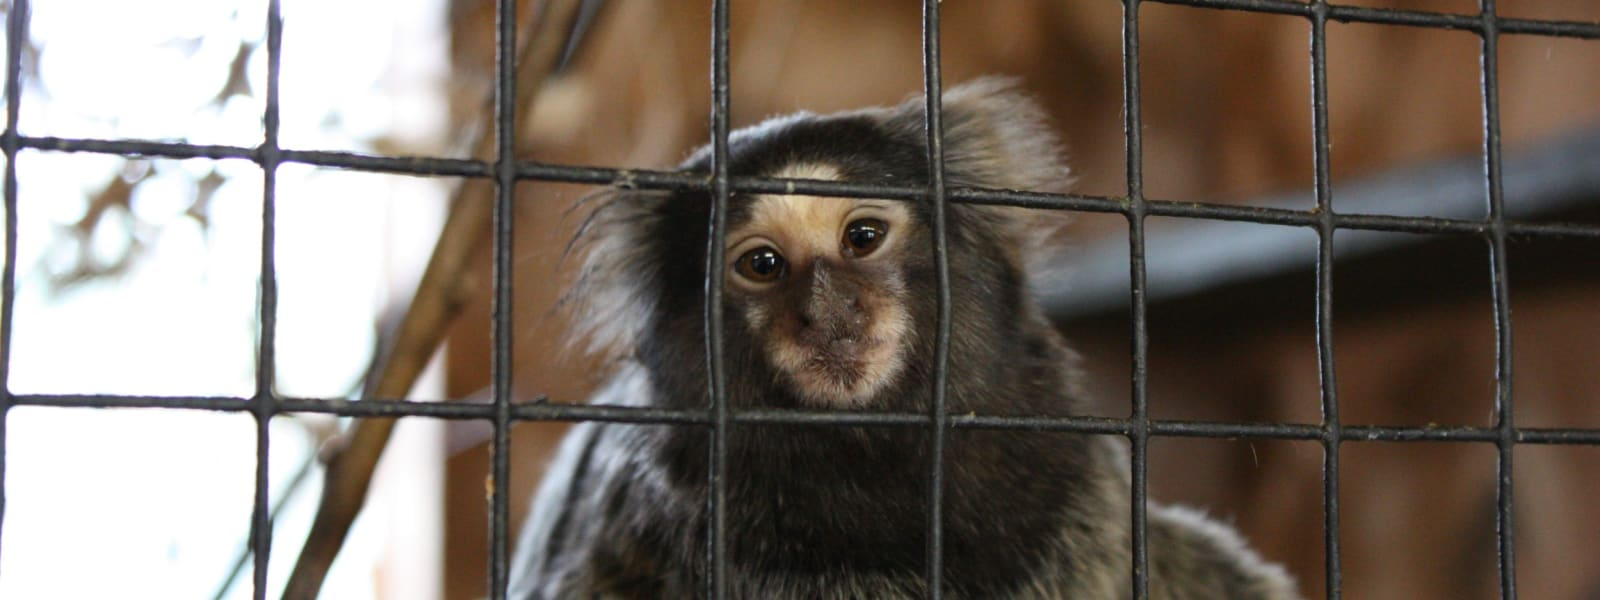 Have Your Say: Ban Primates as Pets!